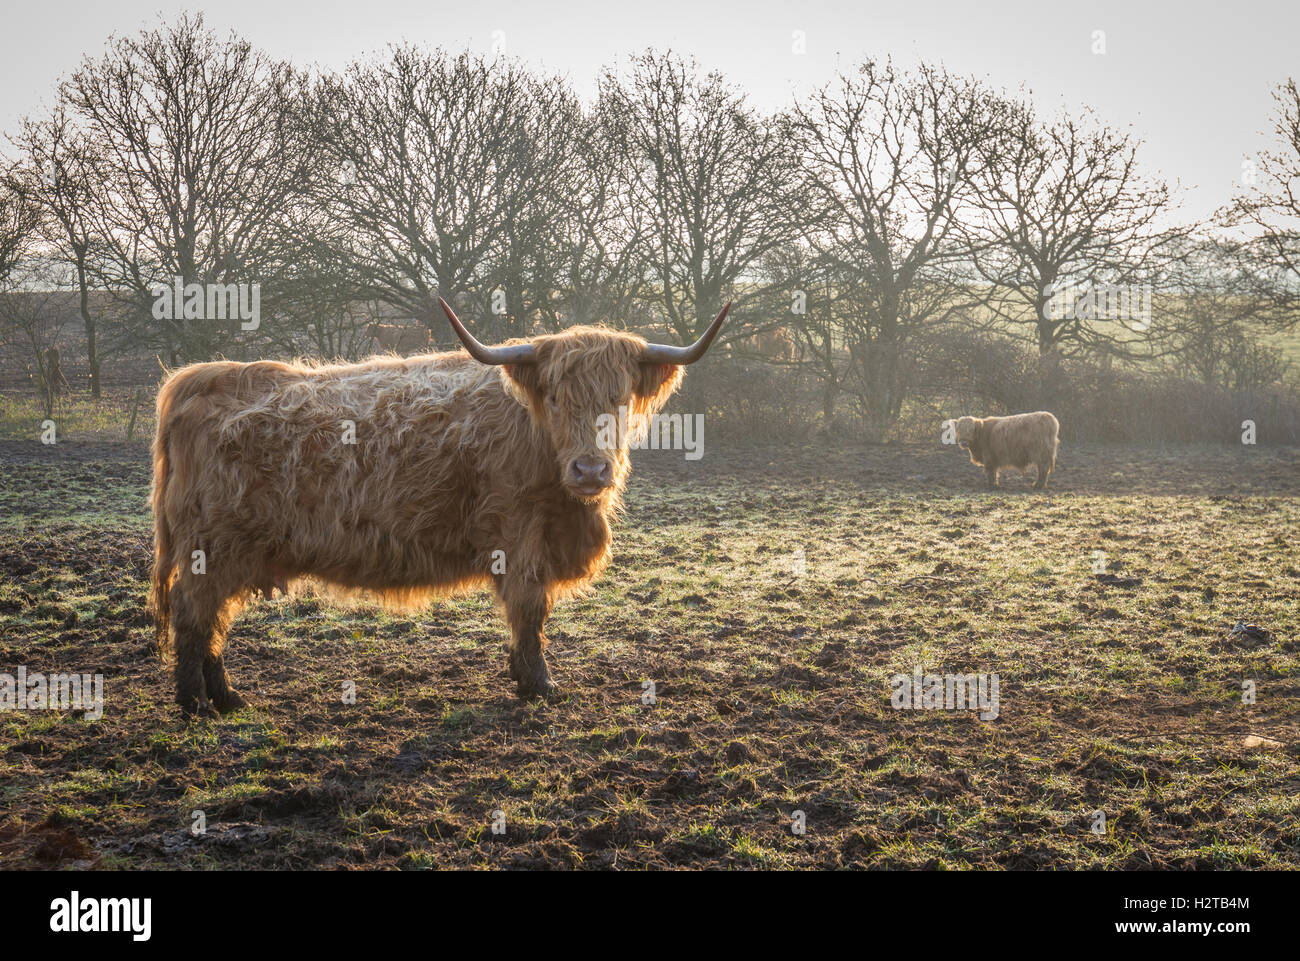 highland cow with horns at sunrise in winter with mist - Stock Image